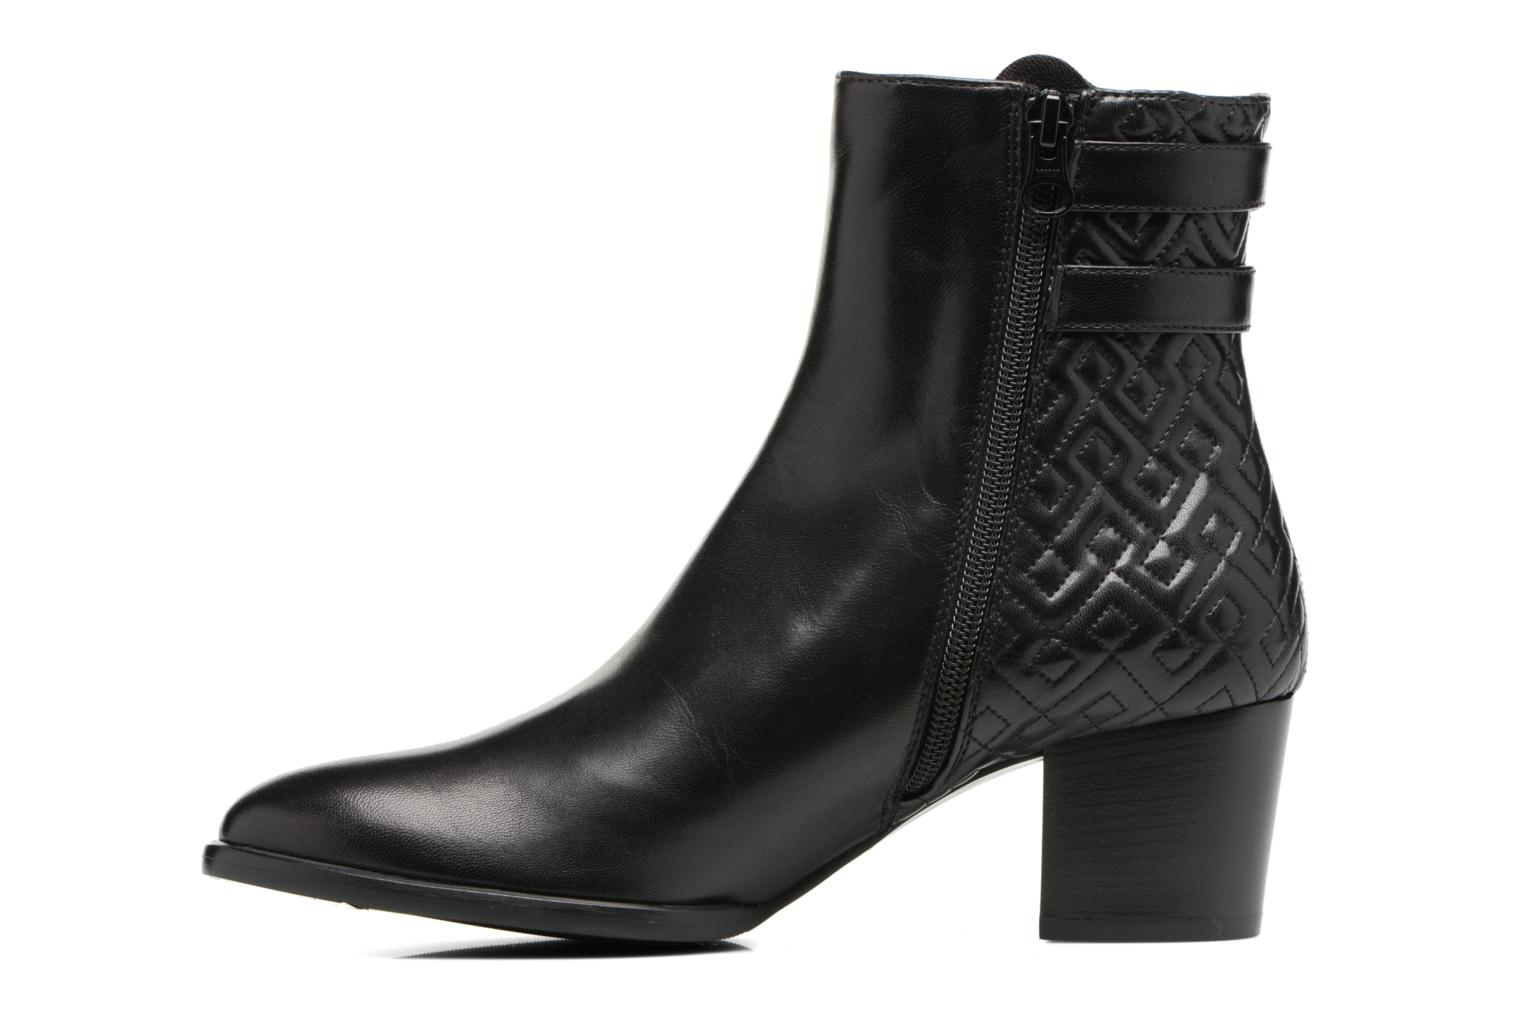 Bottines et boots Heyraud FILIPINE Noir vue face